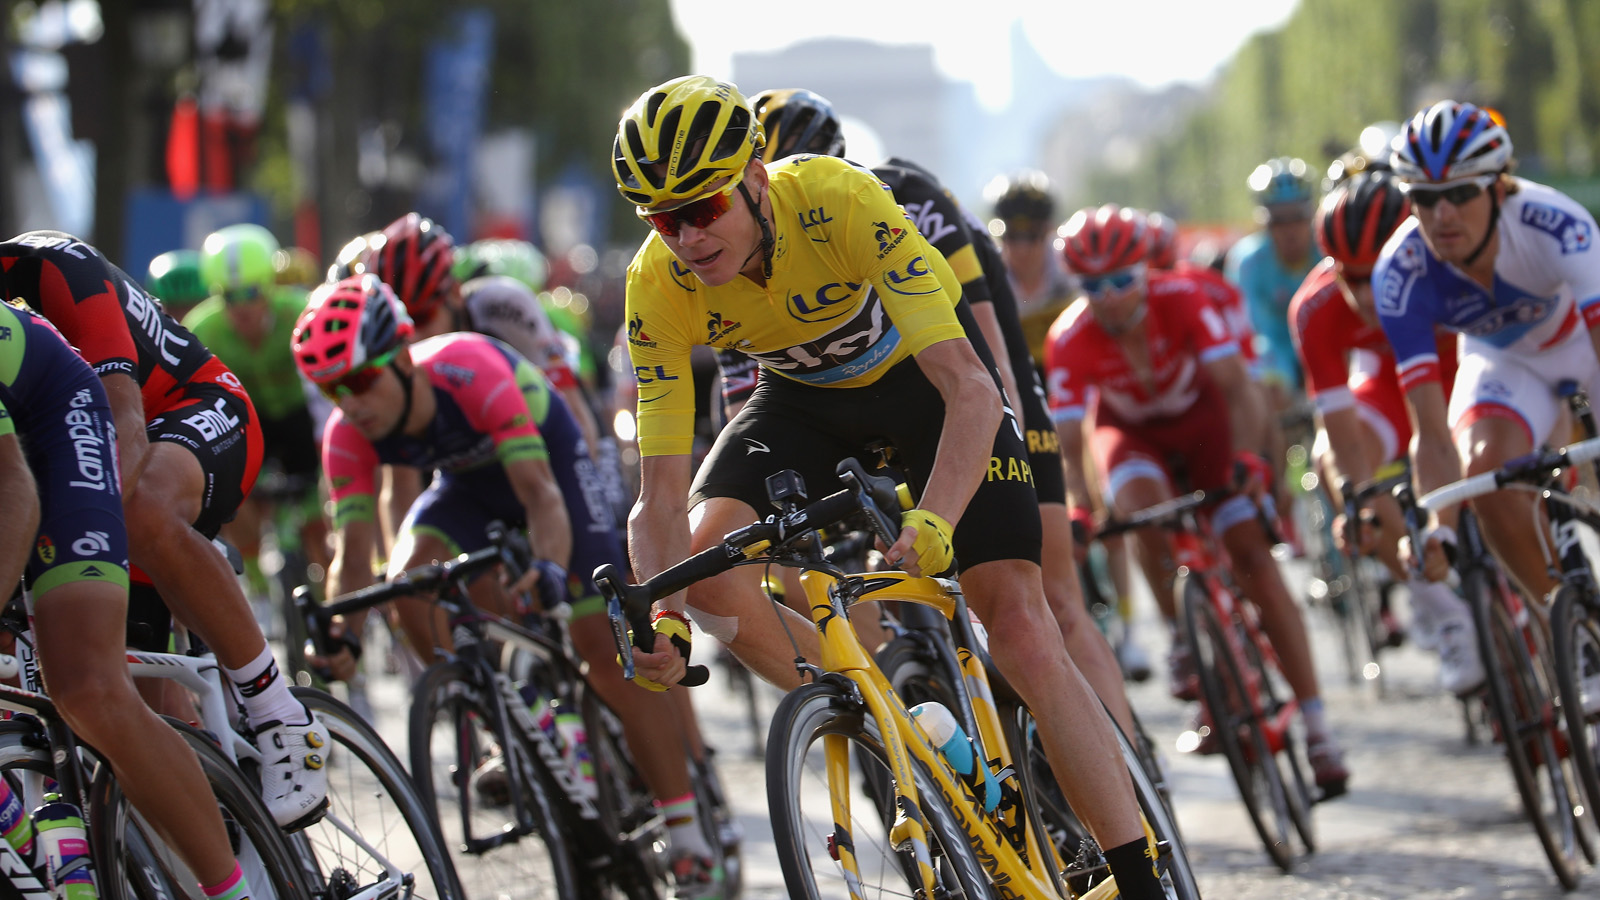 Tour De France 2020 Schedule Start Time Dates Live Stream Route How To Watch Tv Coverage Highlights